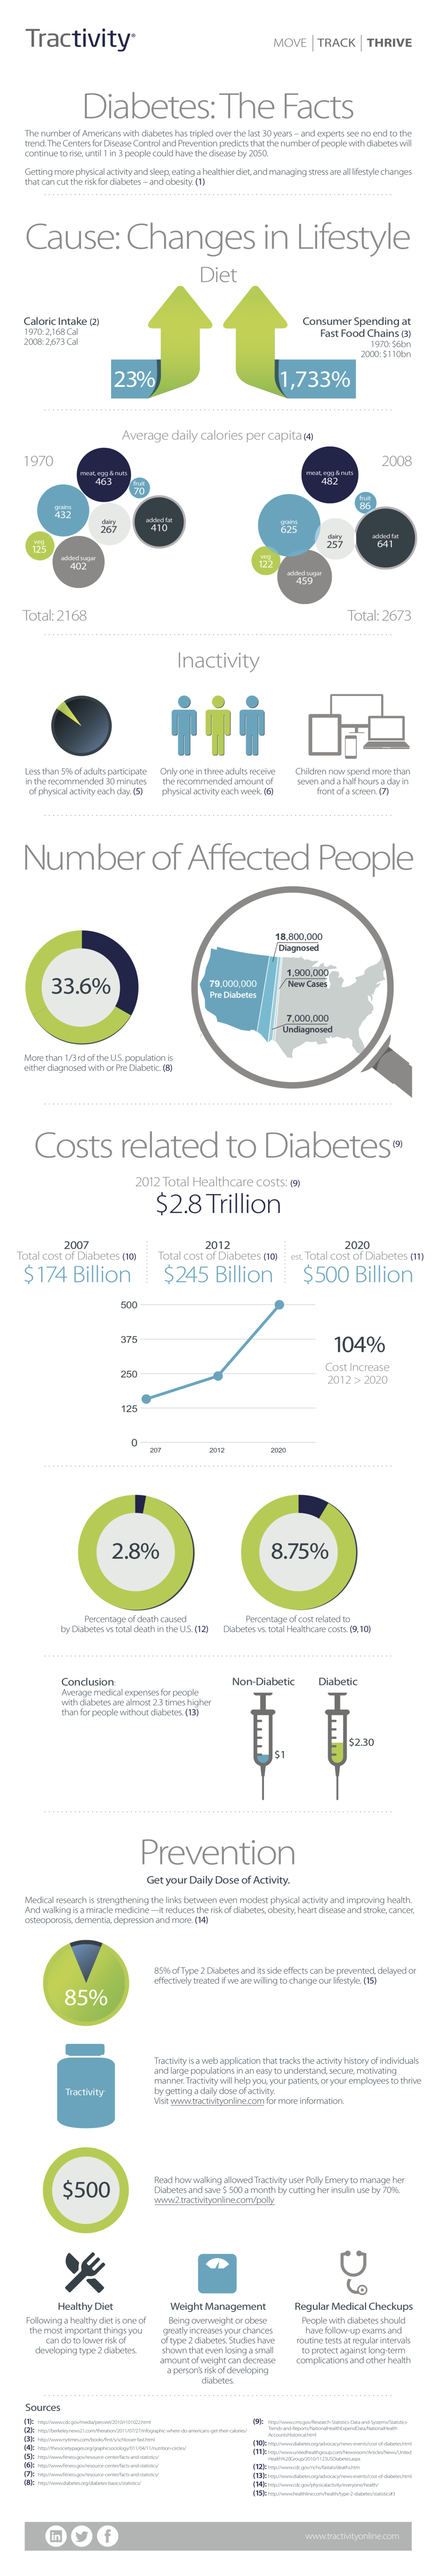 Diabetes: The Facts